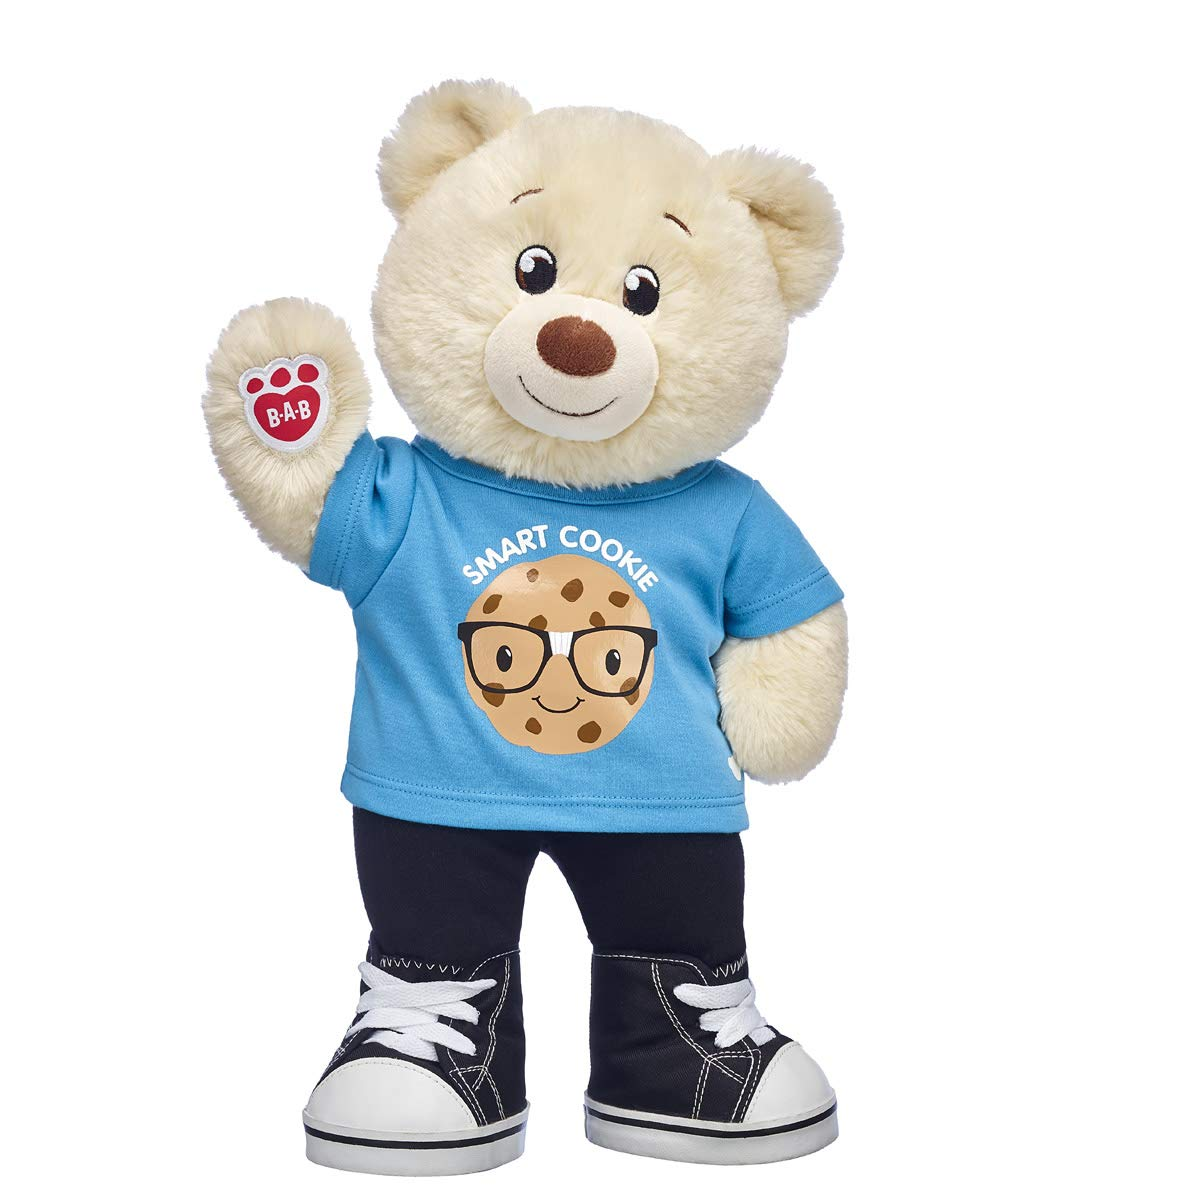 Build A Bear Workshop Online Exclusive Lil' Cub Pudding Smart Cookie Teddy Bear Gift Set, 15 inches by Build A Bear